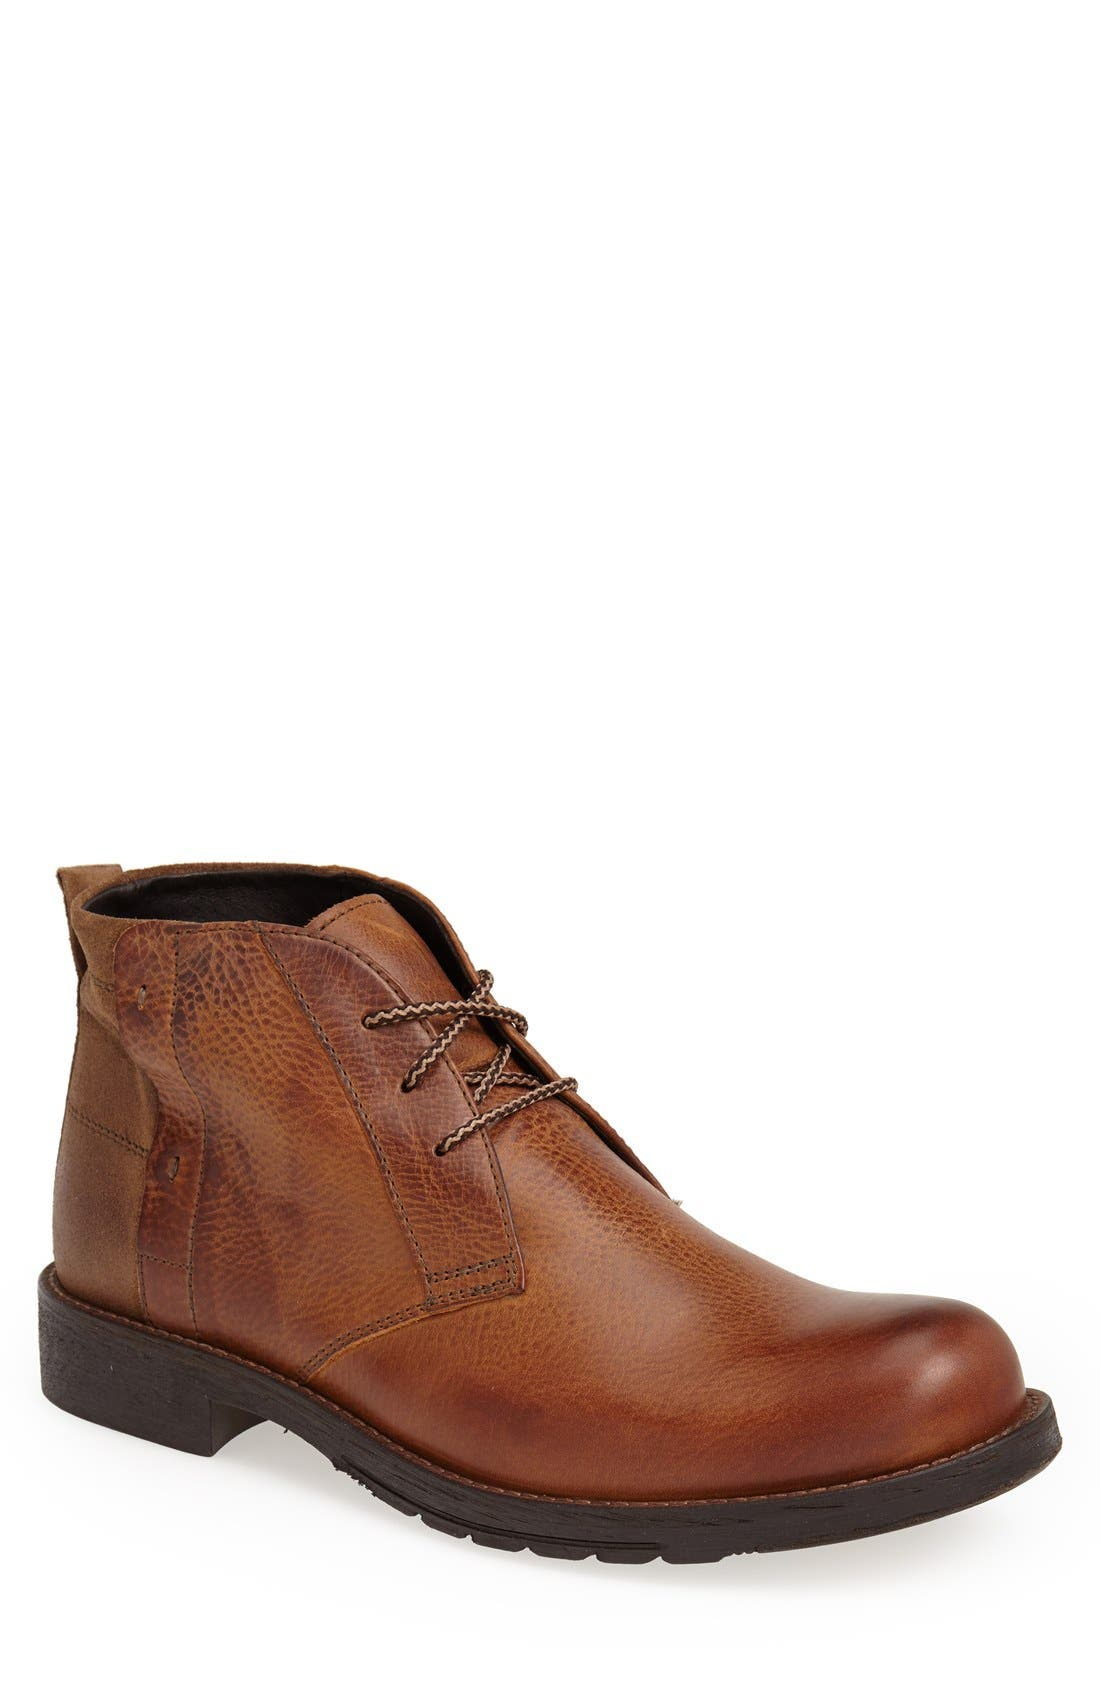 Alternate Image 1 Selected - J&M 1850 'Nordeman' Chukka Boot (Men)